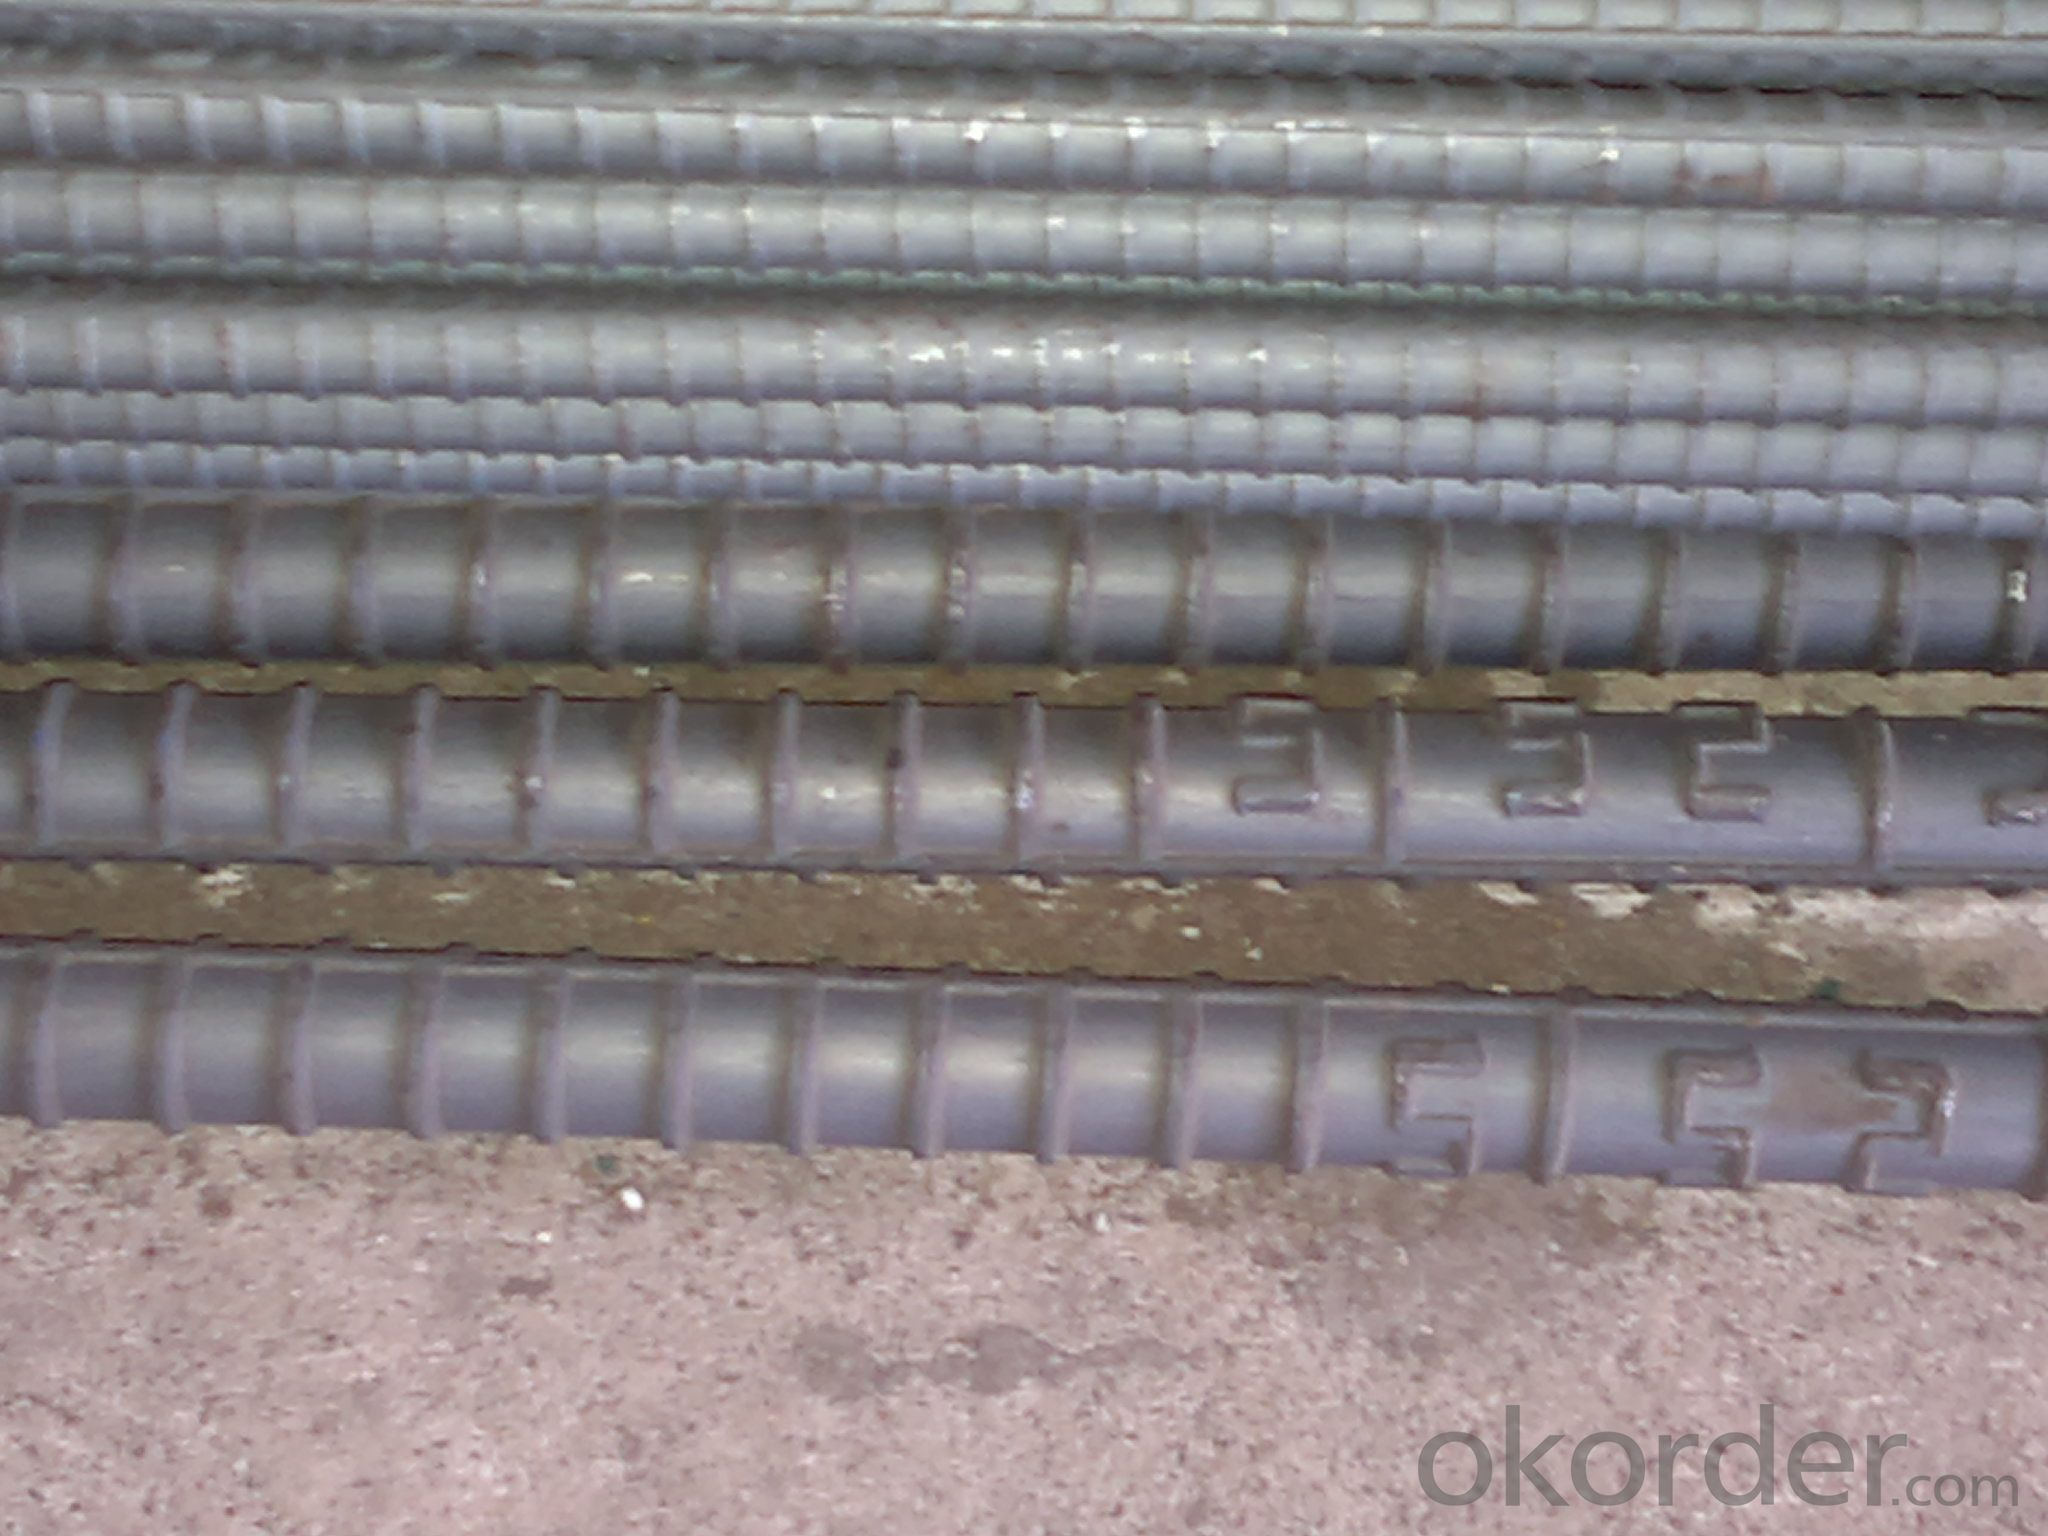 Deformed steel bars type,Class IV Deformed Steel Bar  with hige quality